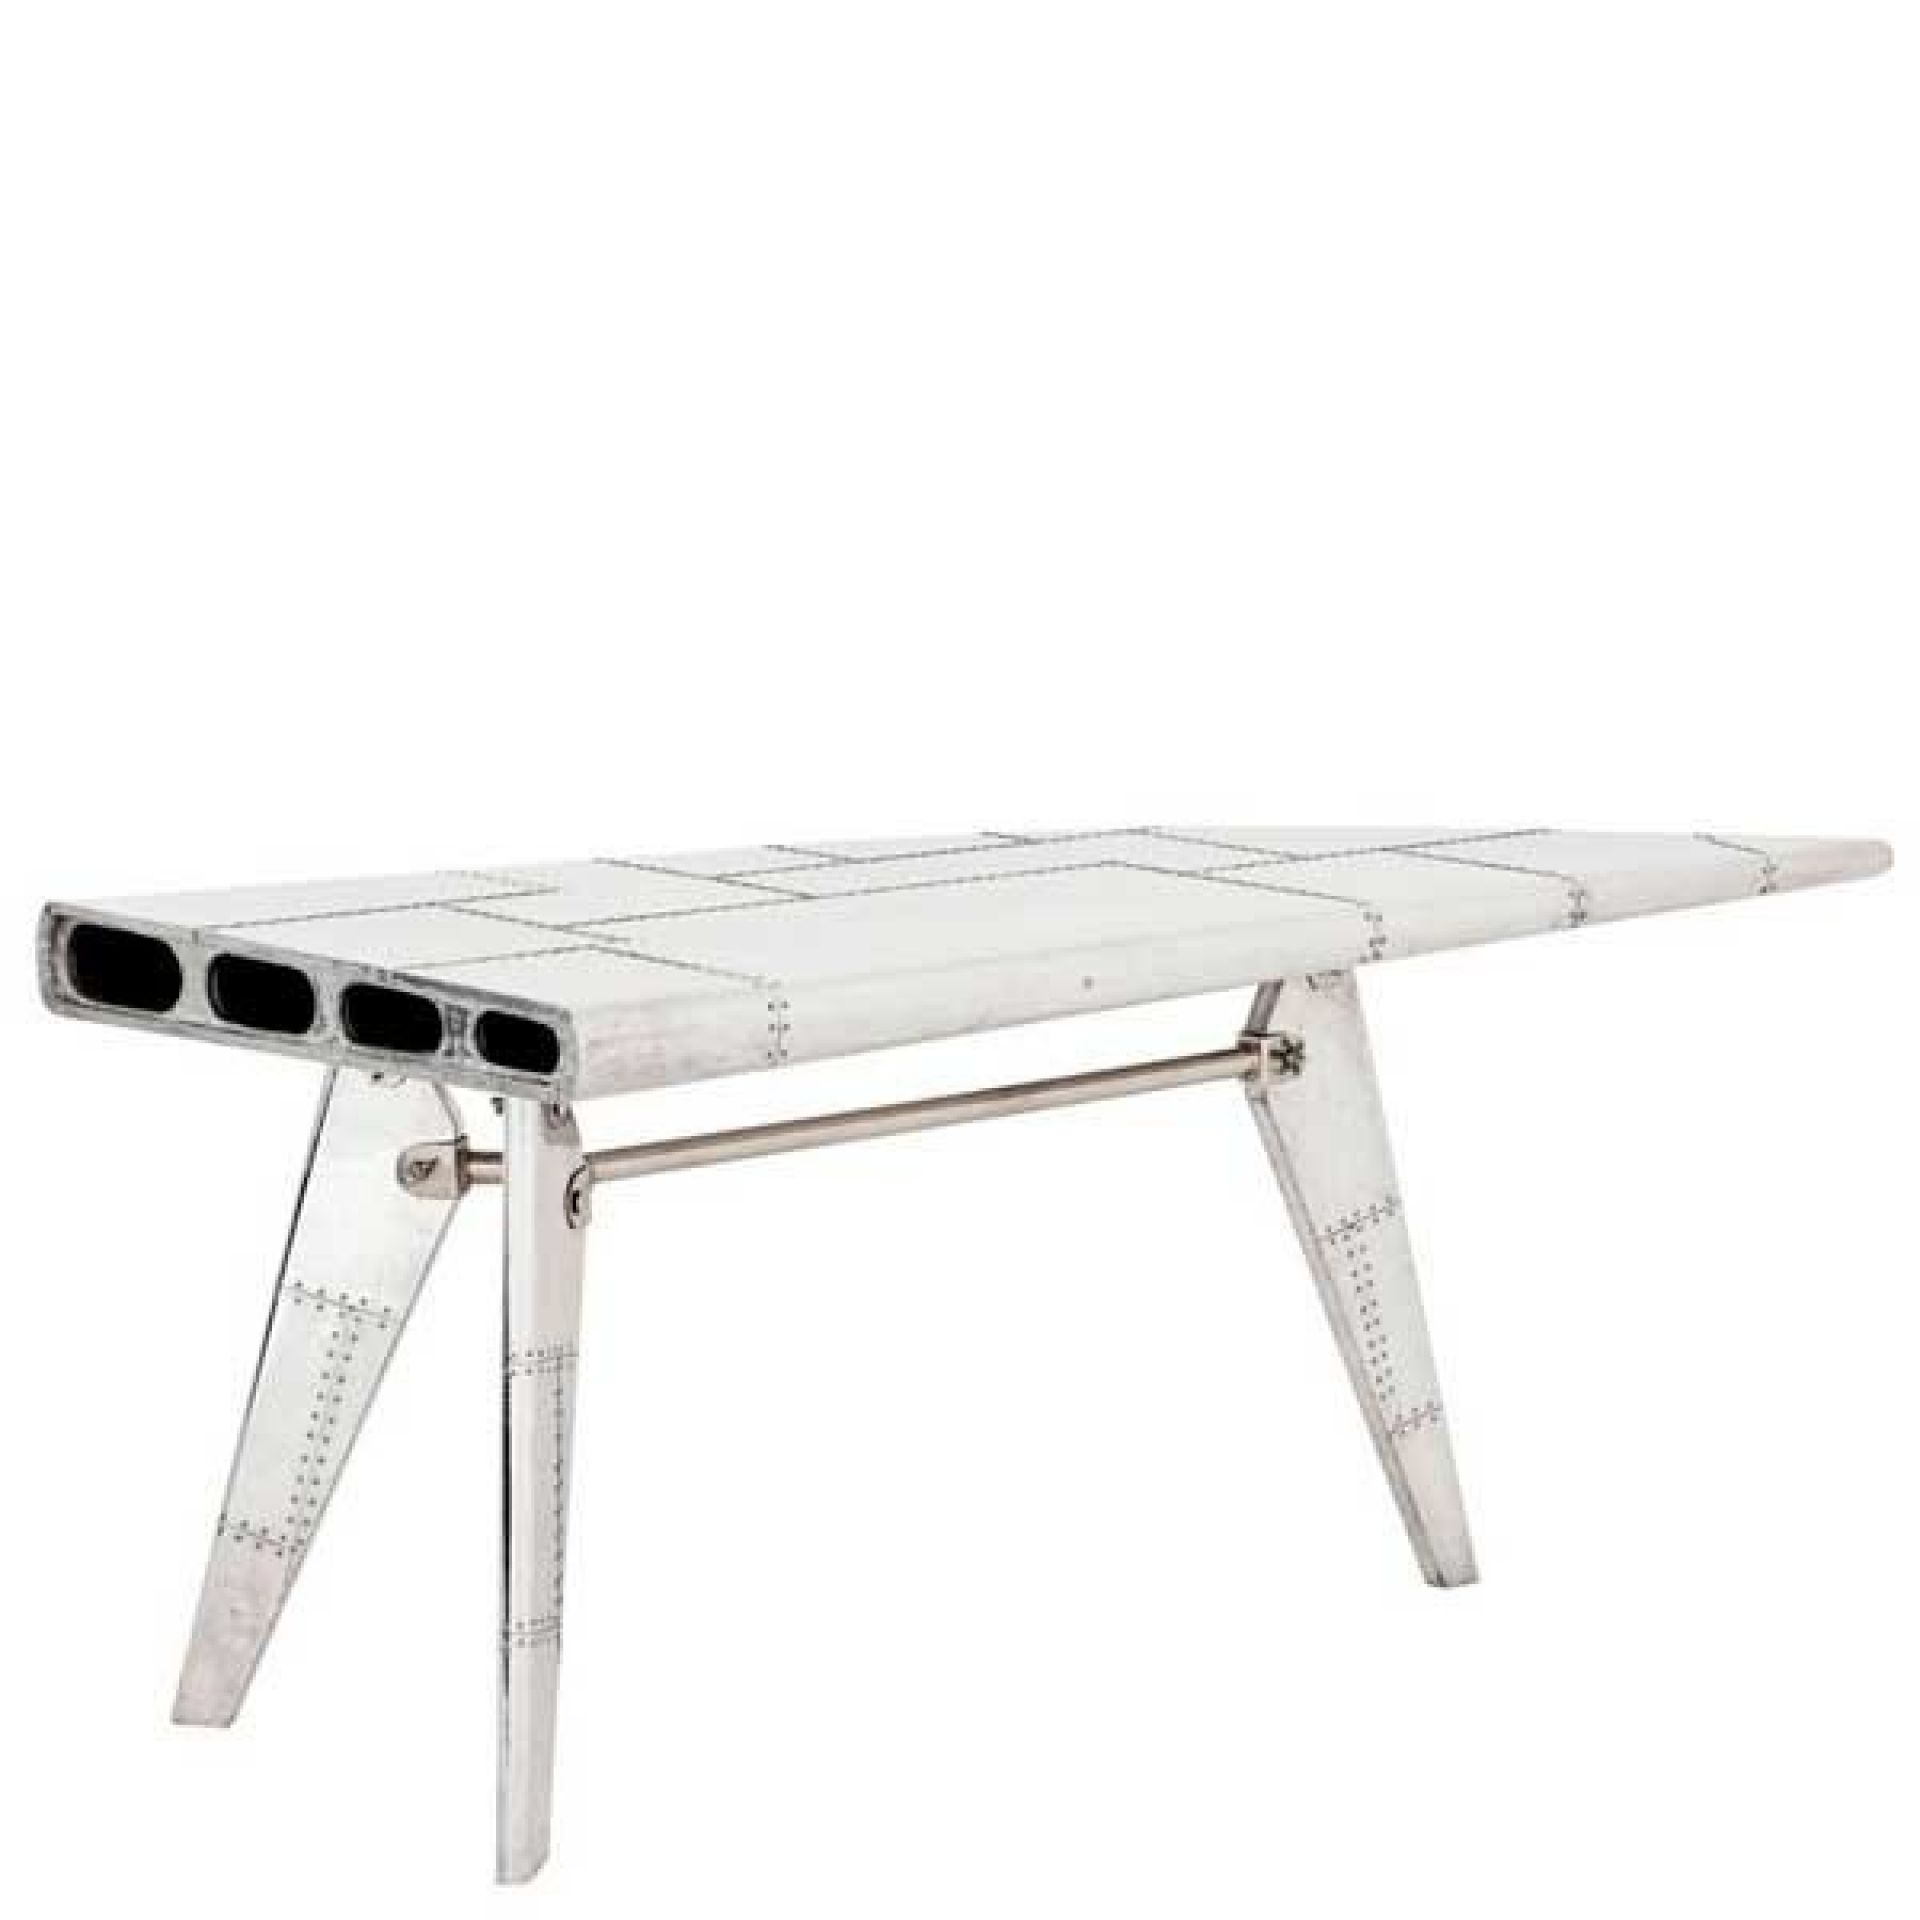 STRAIGHT WING AIRCRAFT DESK WITH RIVETED AND POLISHED ALUMINUM STRUCTURE 24-RIVE